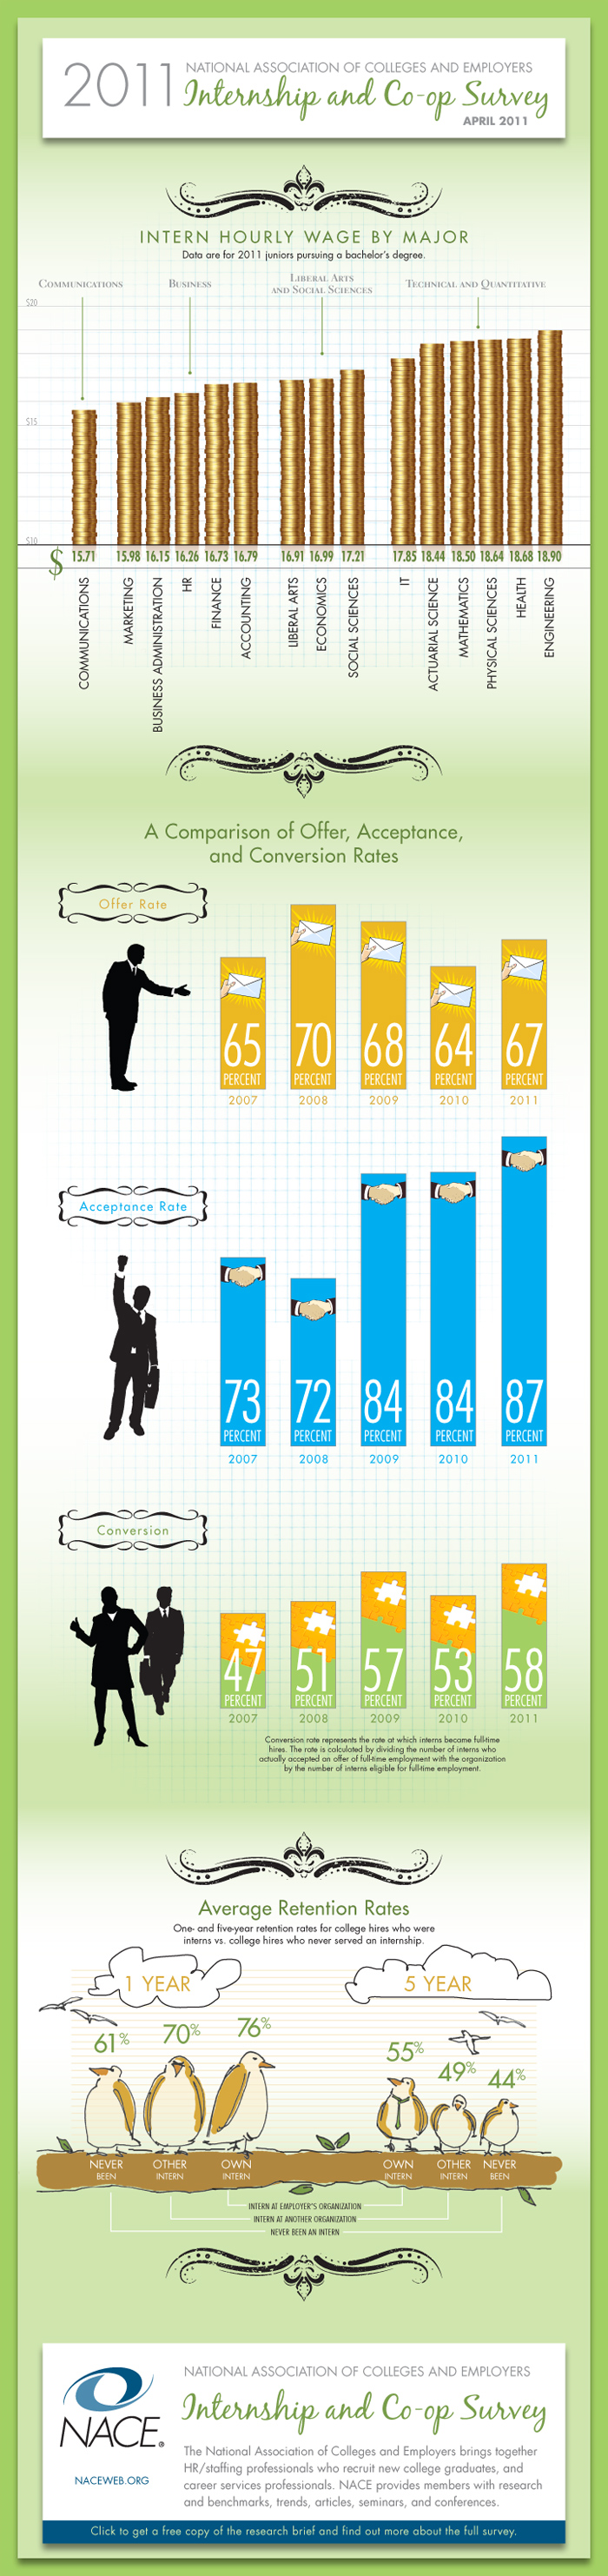 NACE 2011 Internship Survey Infograph